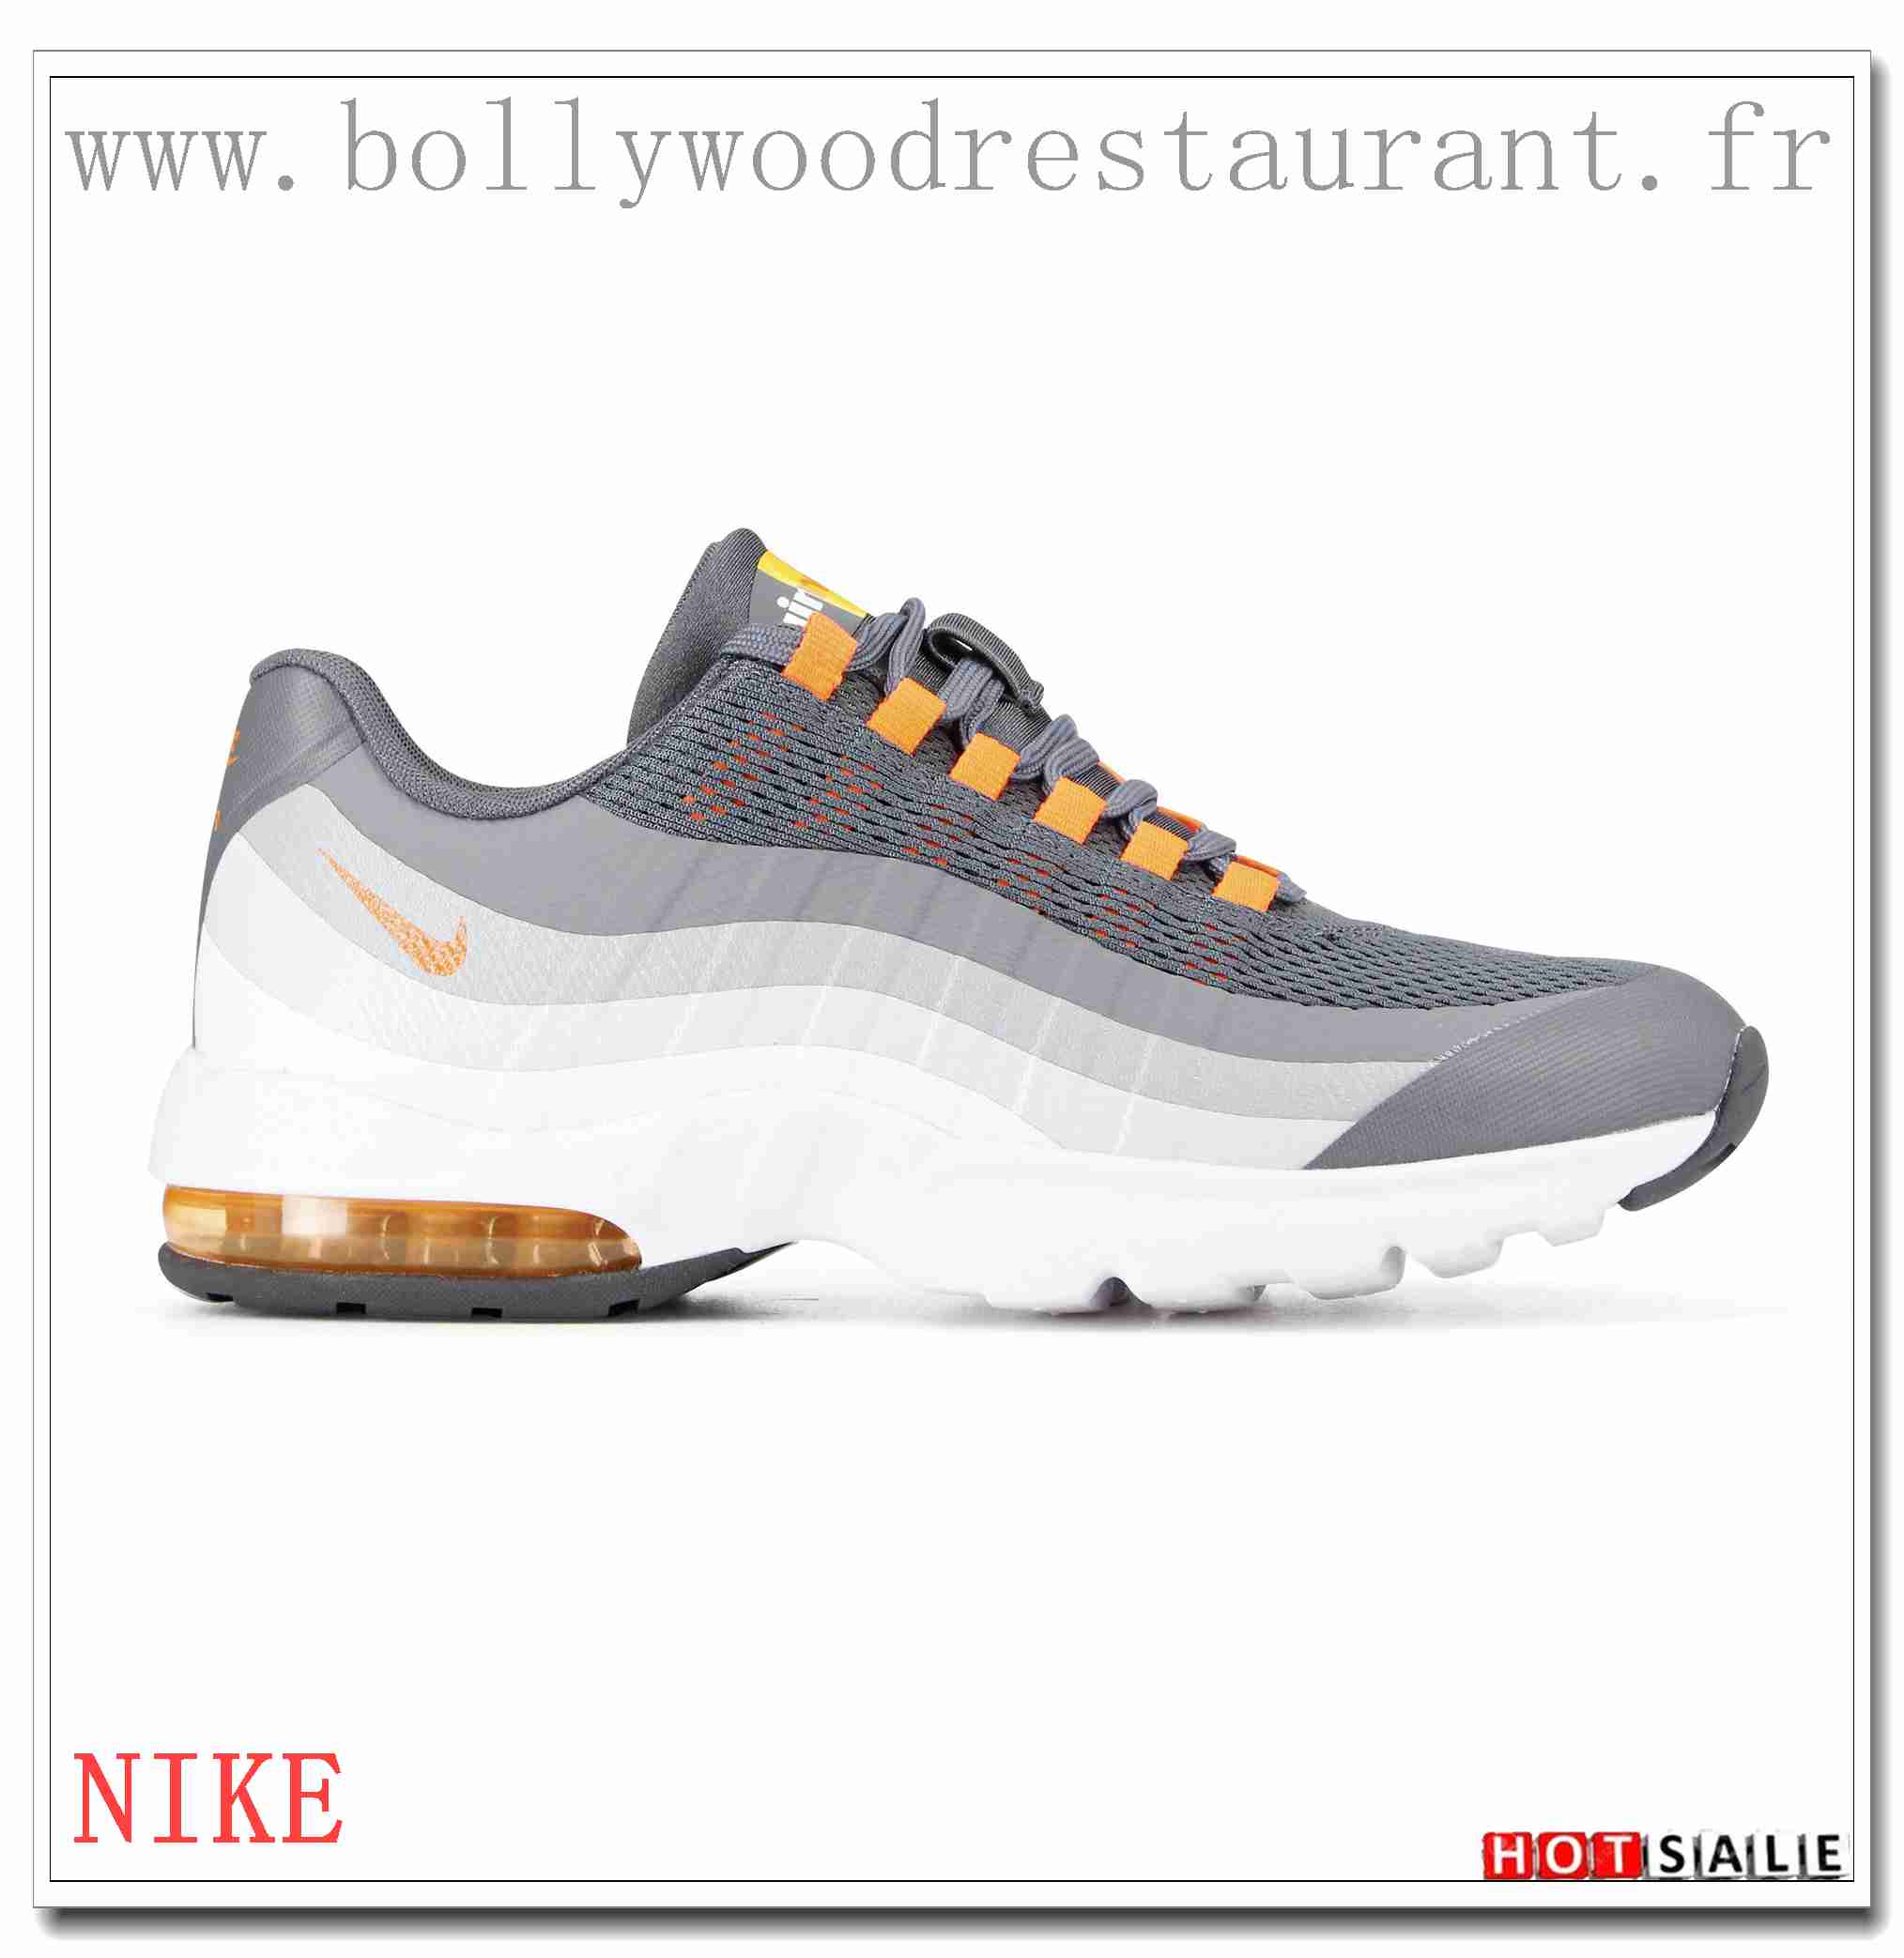 In2890 Nouvelle Collection 2018 Nouveau Style Nike Air Max 95